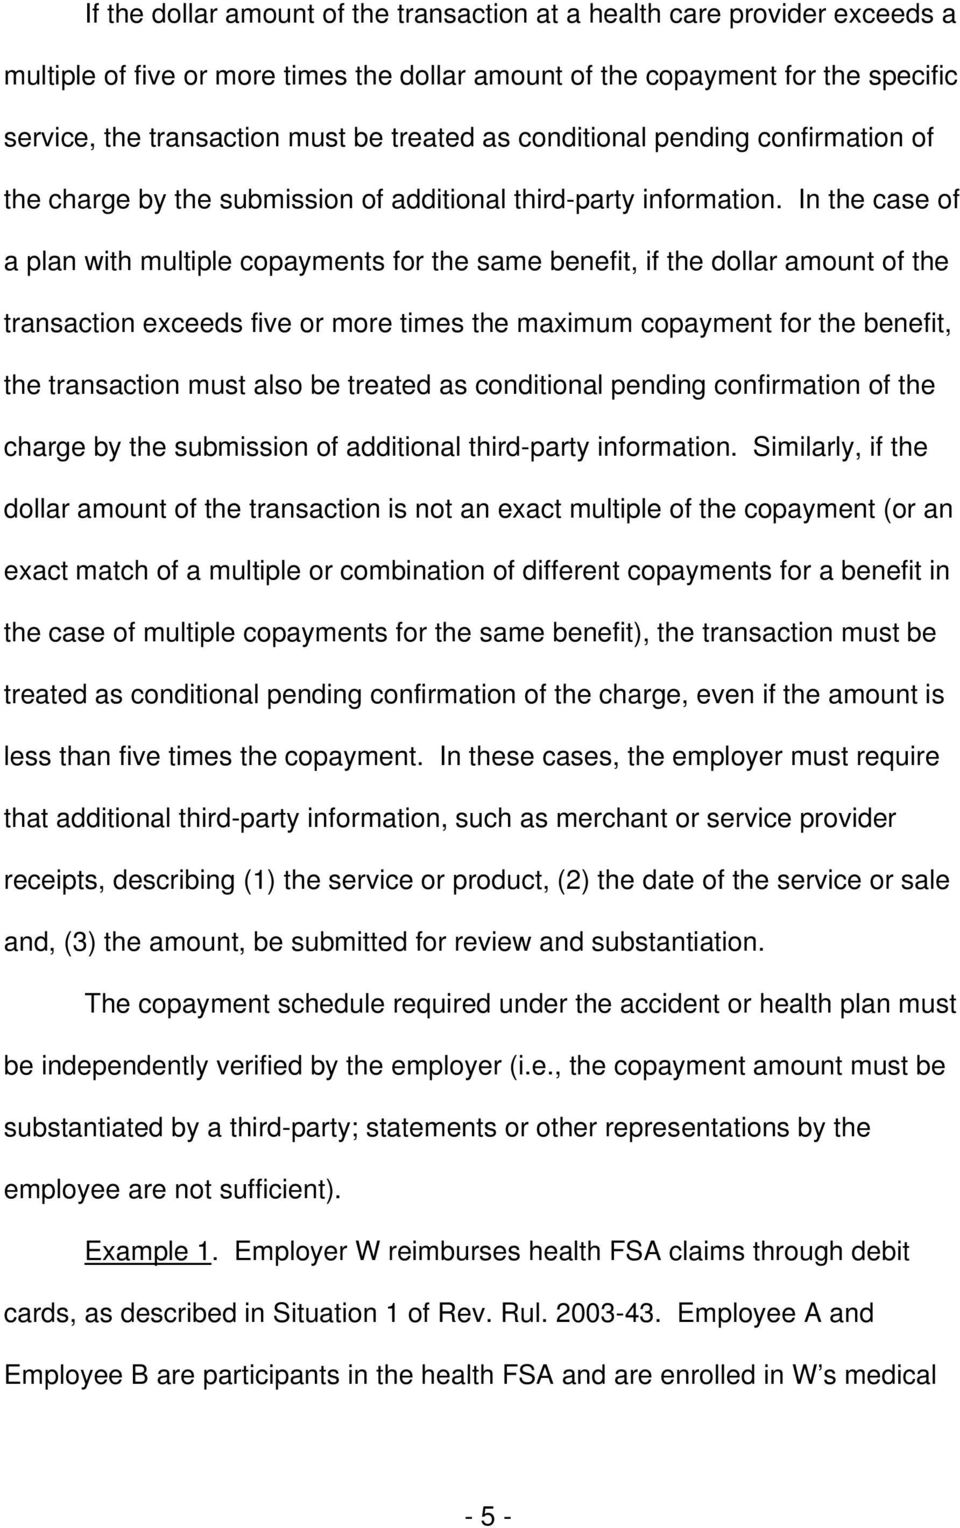 In the case of a plan with multiple copayments for the same benefit, if the dollar amount of the transaction exceeds five or more times the maximum copayment for the benefit, the transaction must